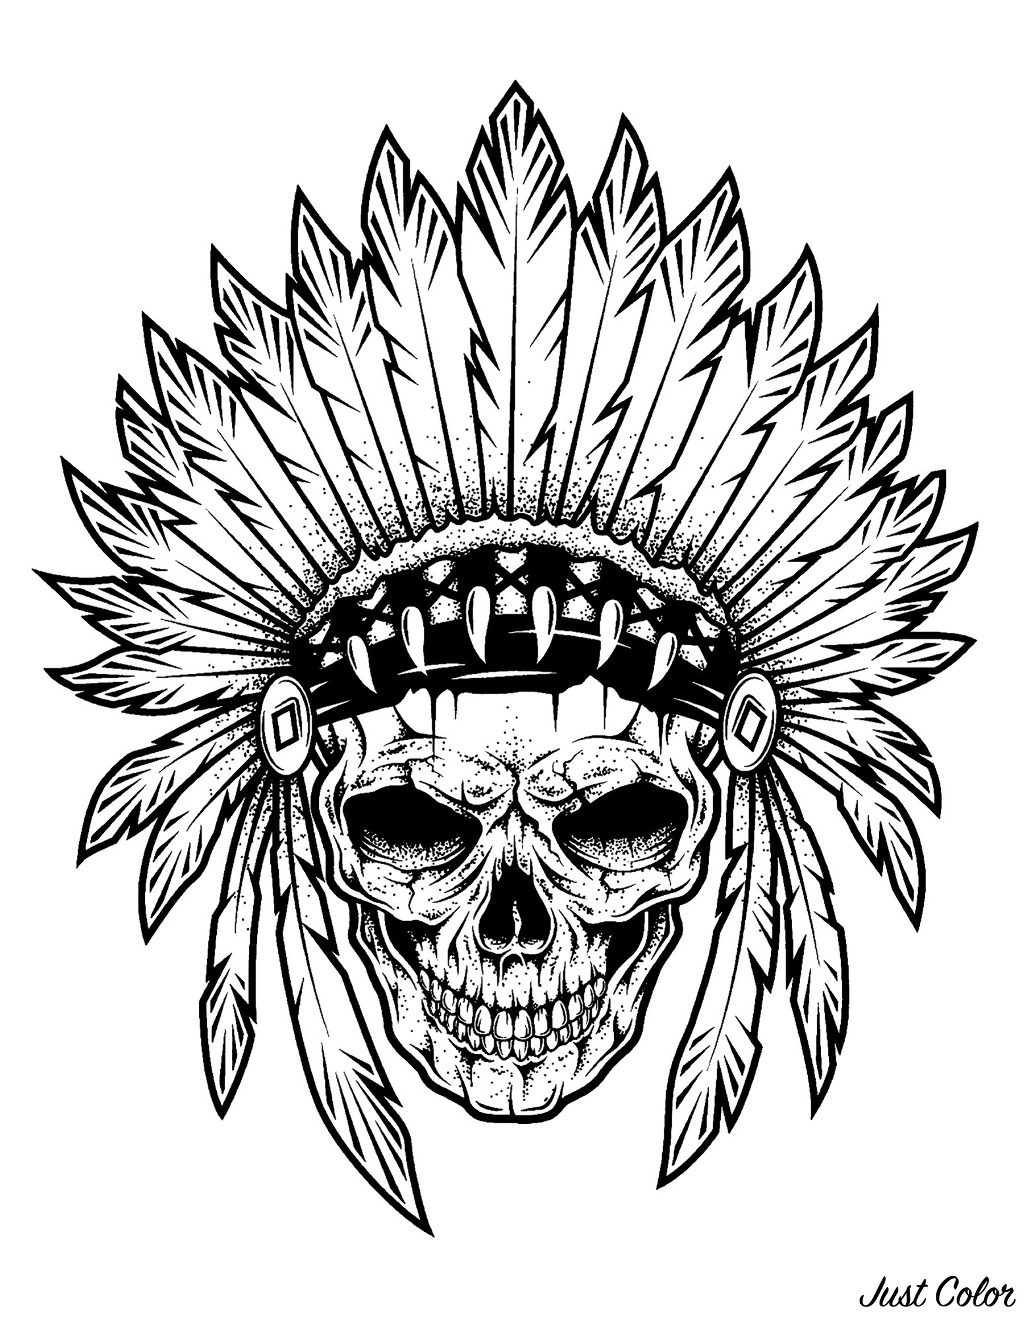 Tattoo of the skull of an Indian Chief